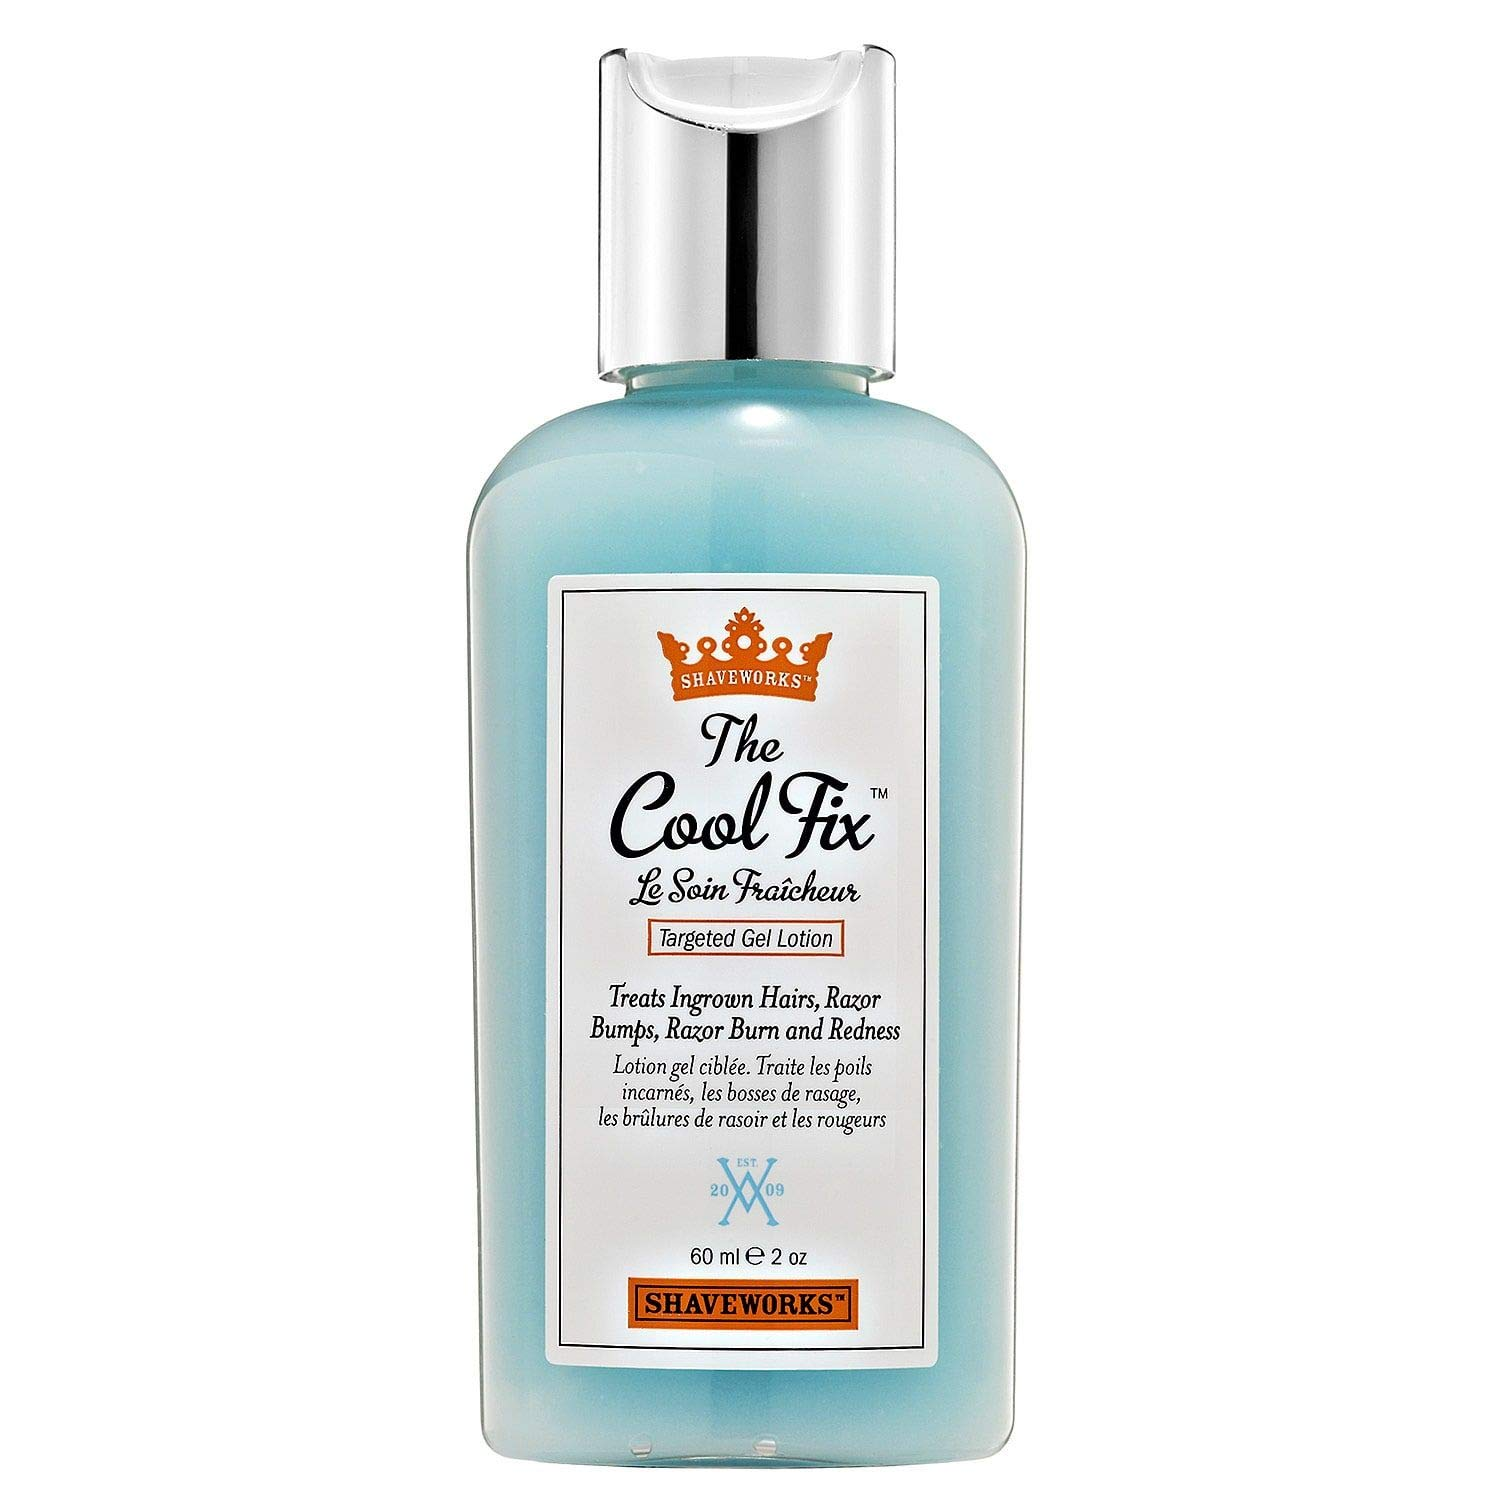 Shaveworks The Cool Fix, After Shave/Post Waxing Solution for Ingrown Hair, Razor Bumps and Razor Burns, 2 Fl Oz. Recommended by Khloé Kardashian